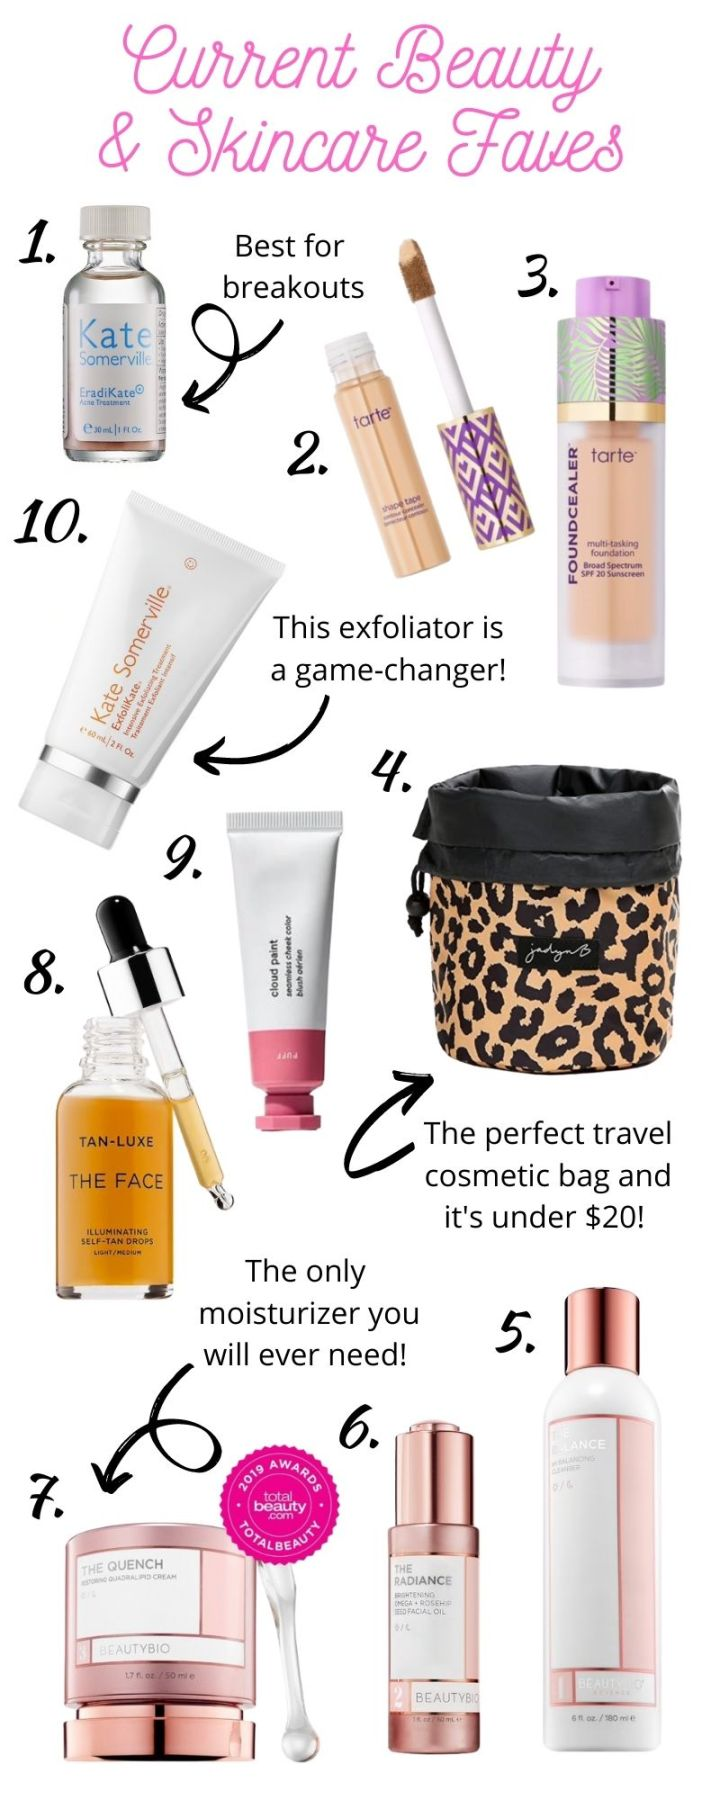 Current Beauty & Skincare Faves!-2